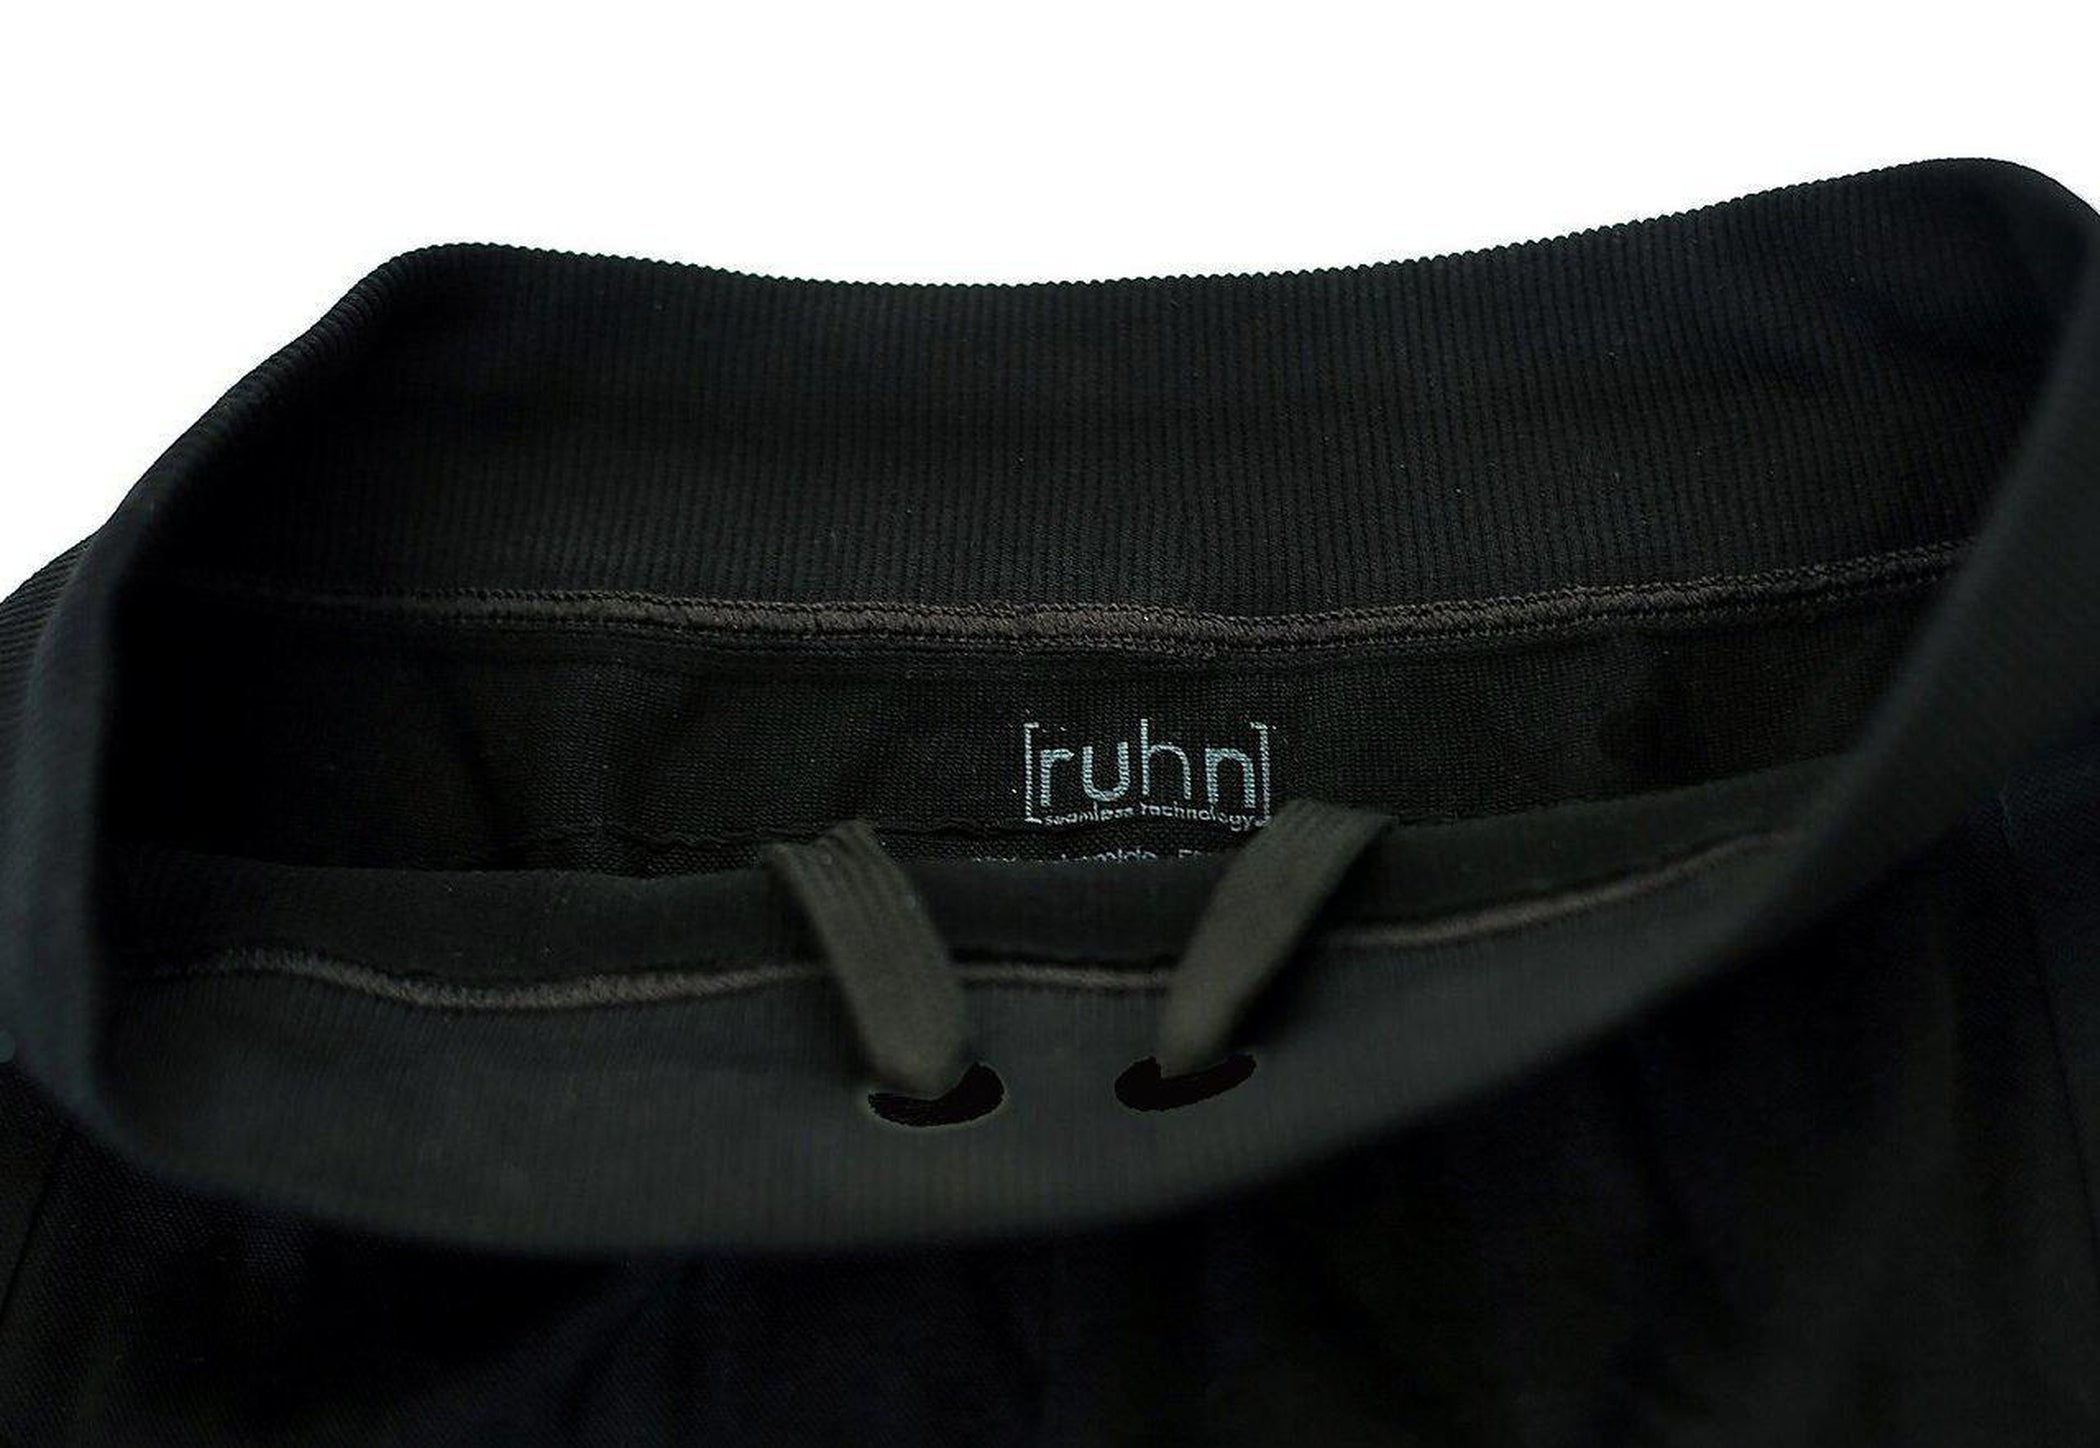 Black compression pant with patented fully seamless front and pockets. Drawstring.